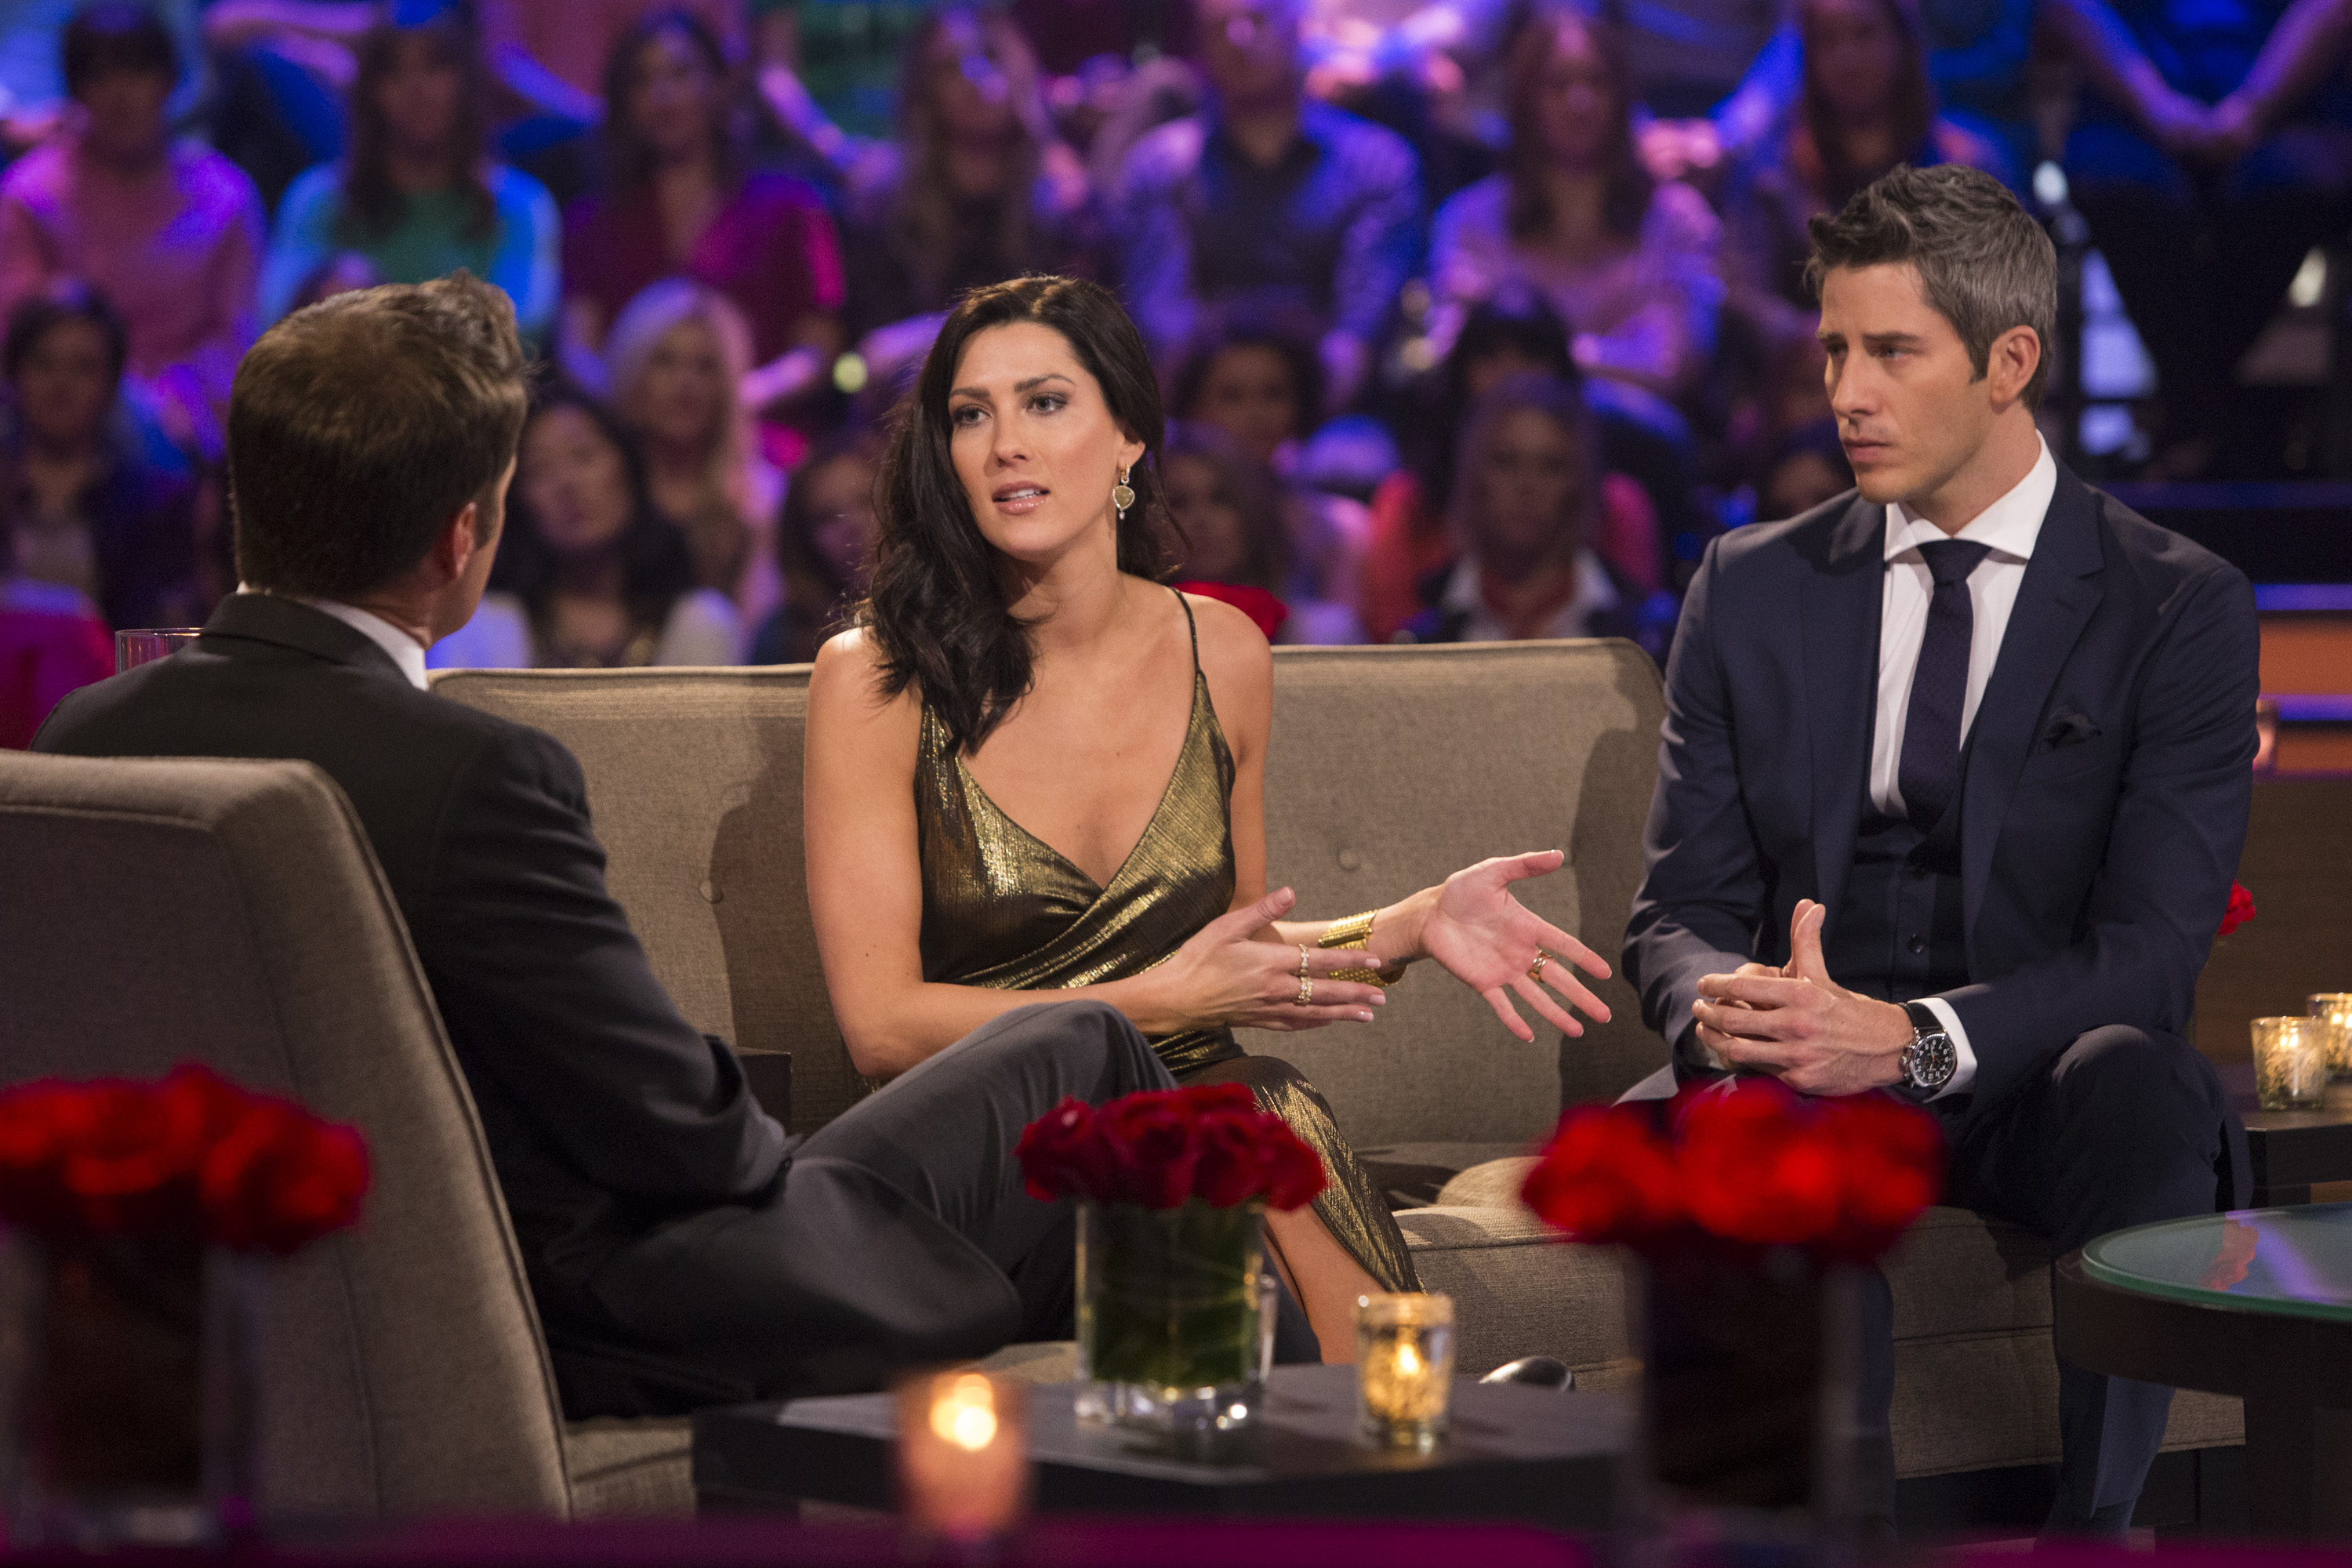 As predicted by just about everyone in #BachelorNation, Becca Kufrin, the winner turned runner-up of this past season of The Bachelor, was announced as the next Bachelorette at the end of last night's After The Final Rose episode. (Image: ABC/Paul Hebert)